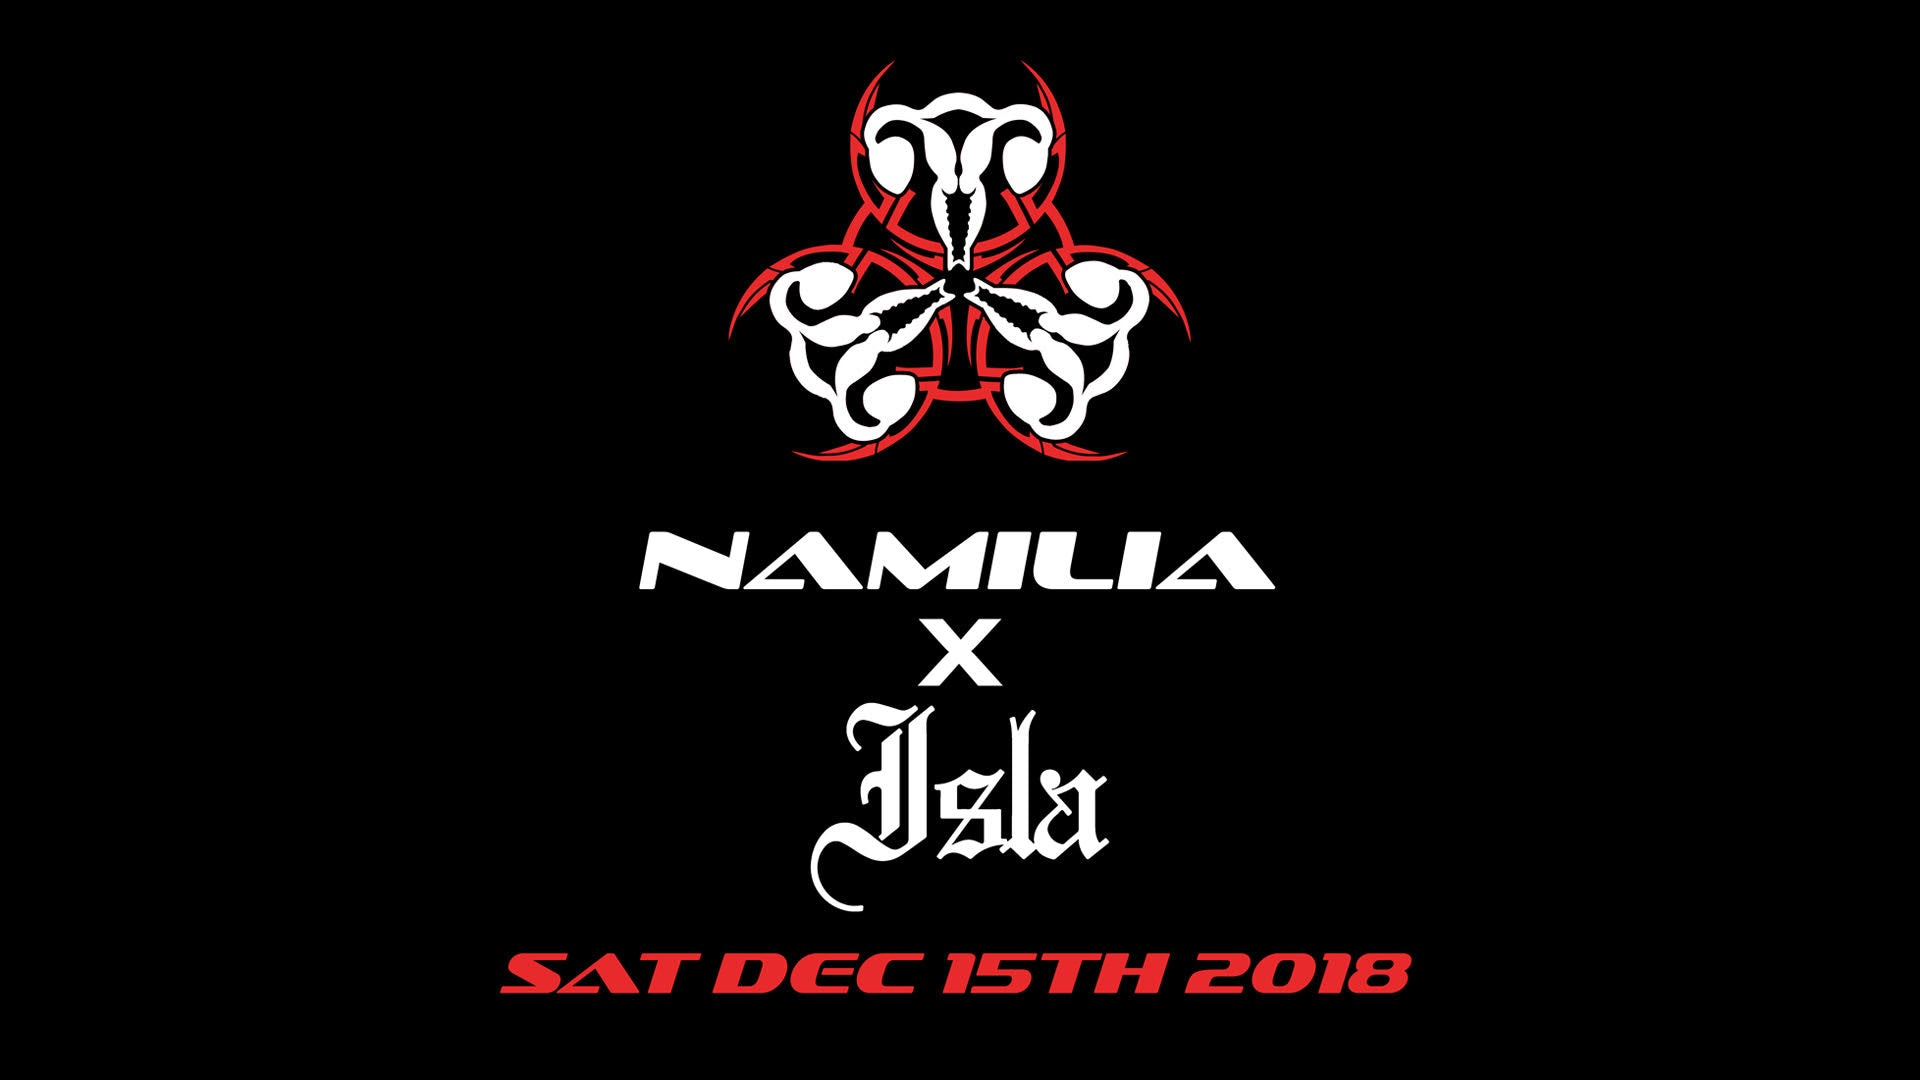 Namilia X ISLA XXXmas party